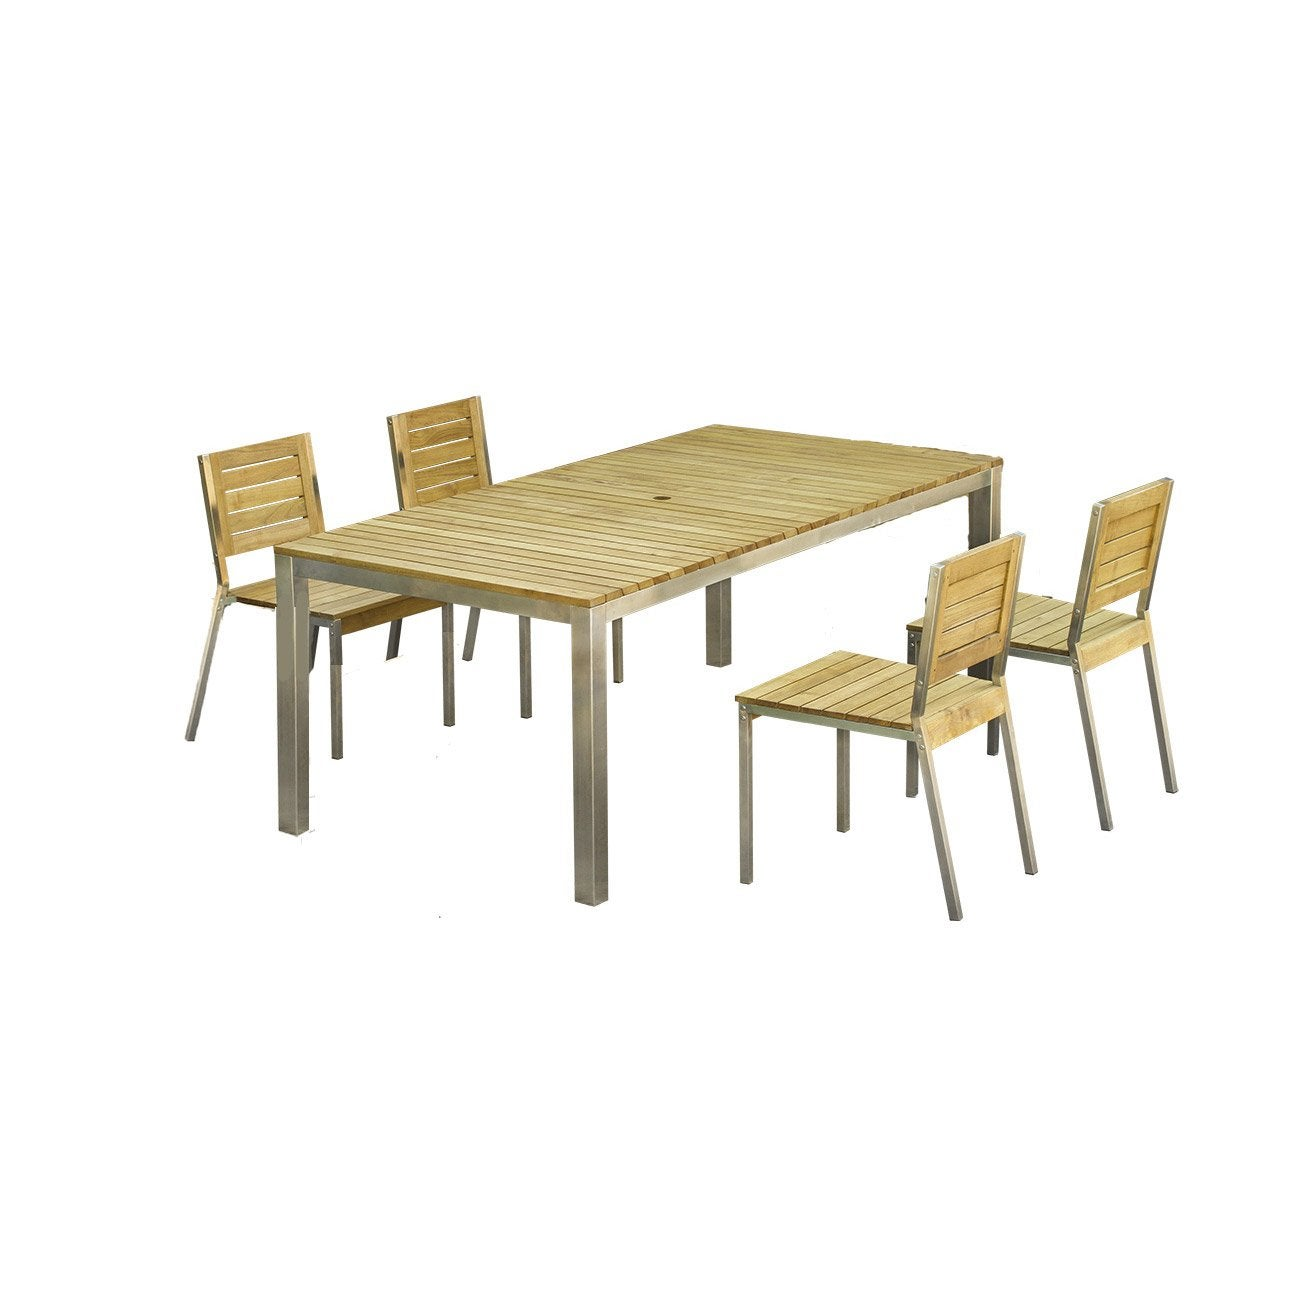 Pied de table bois leroy merlin great terrasse with pied de table bois leroy merlin affordable - Pied de table leroy merlin ...